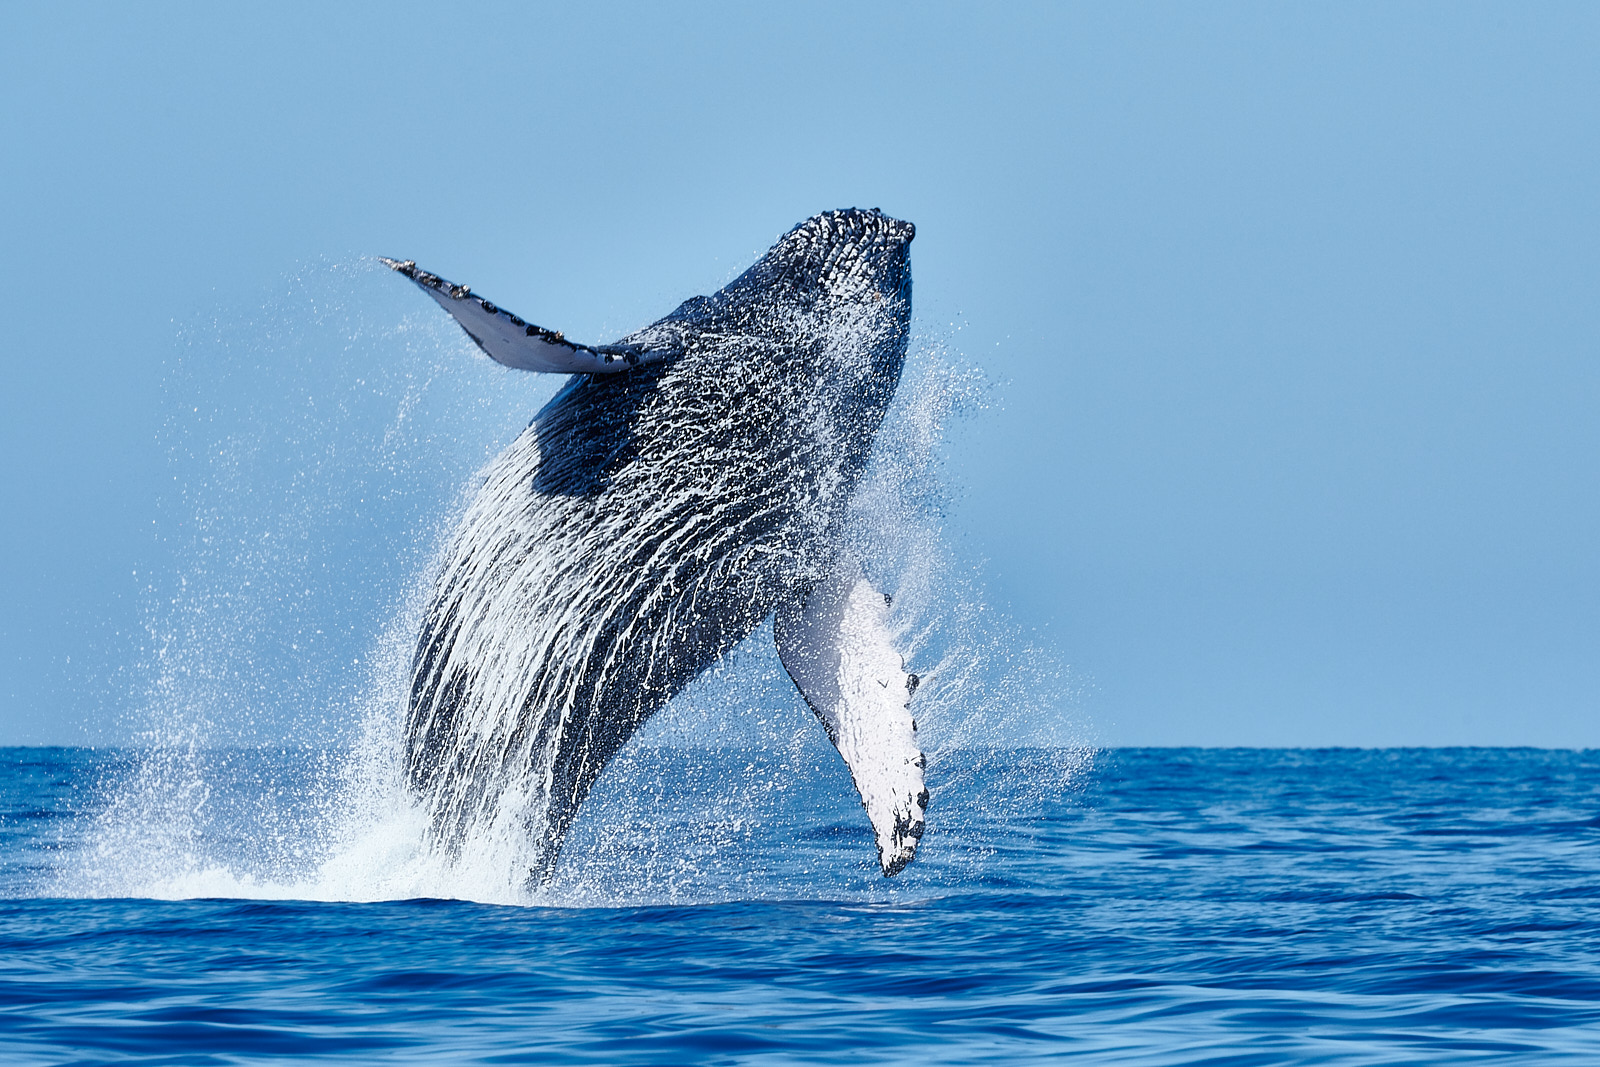 A humpback whale breaching out of the pacific ocean on the island of Maui